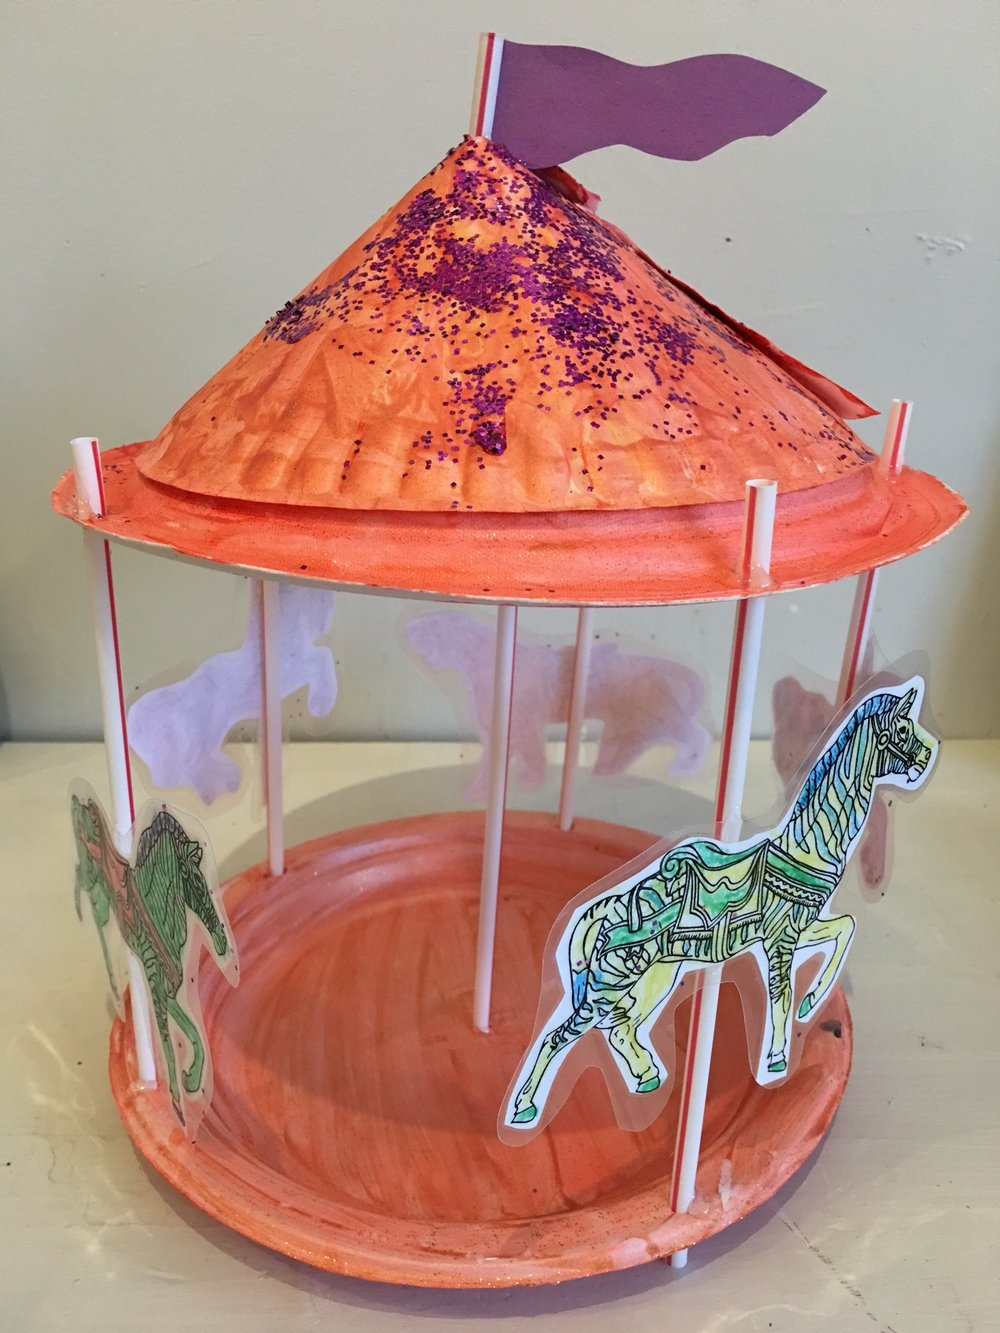 Mixed media assembled carousel with paper cut outs!